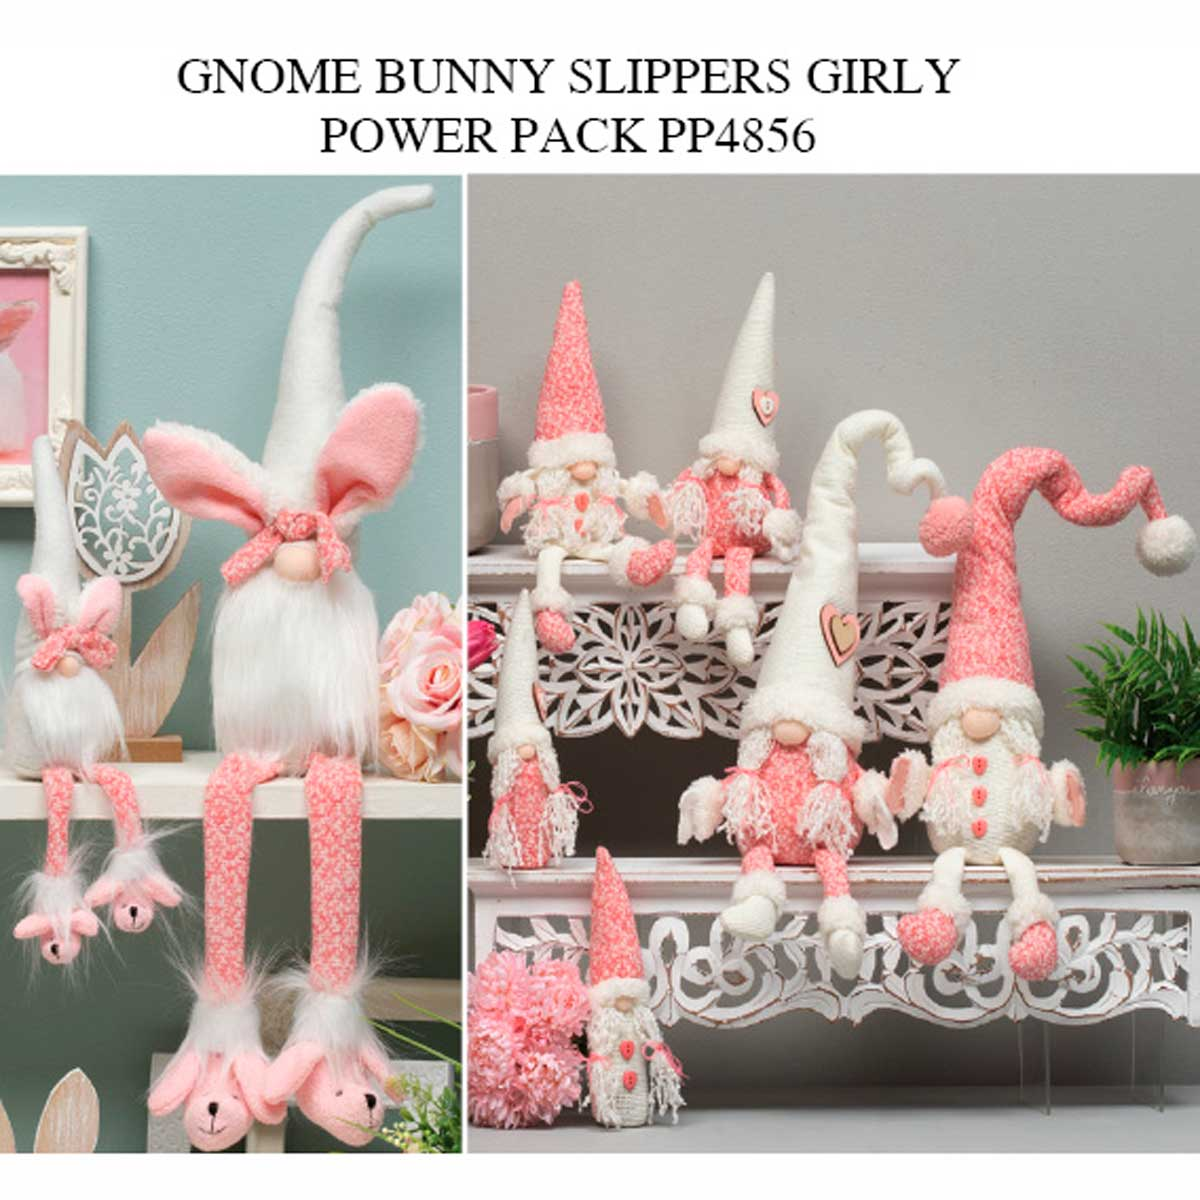 Bunny Slumber Party and Girly Girl Gnome Power Pack 24 Units